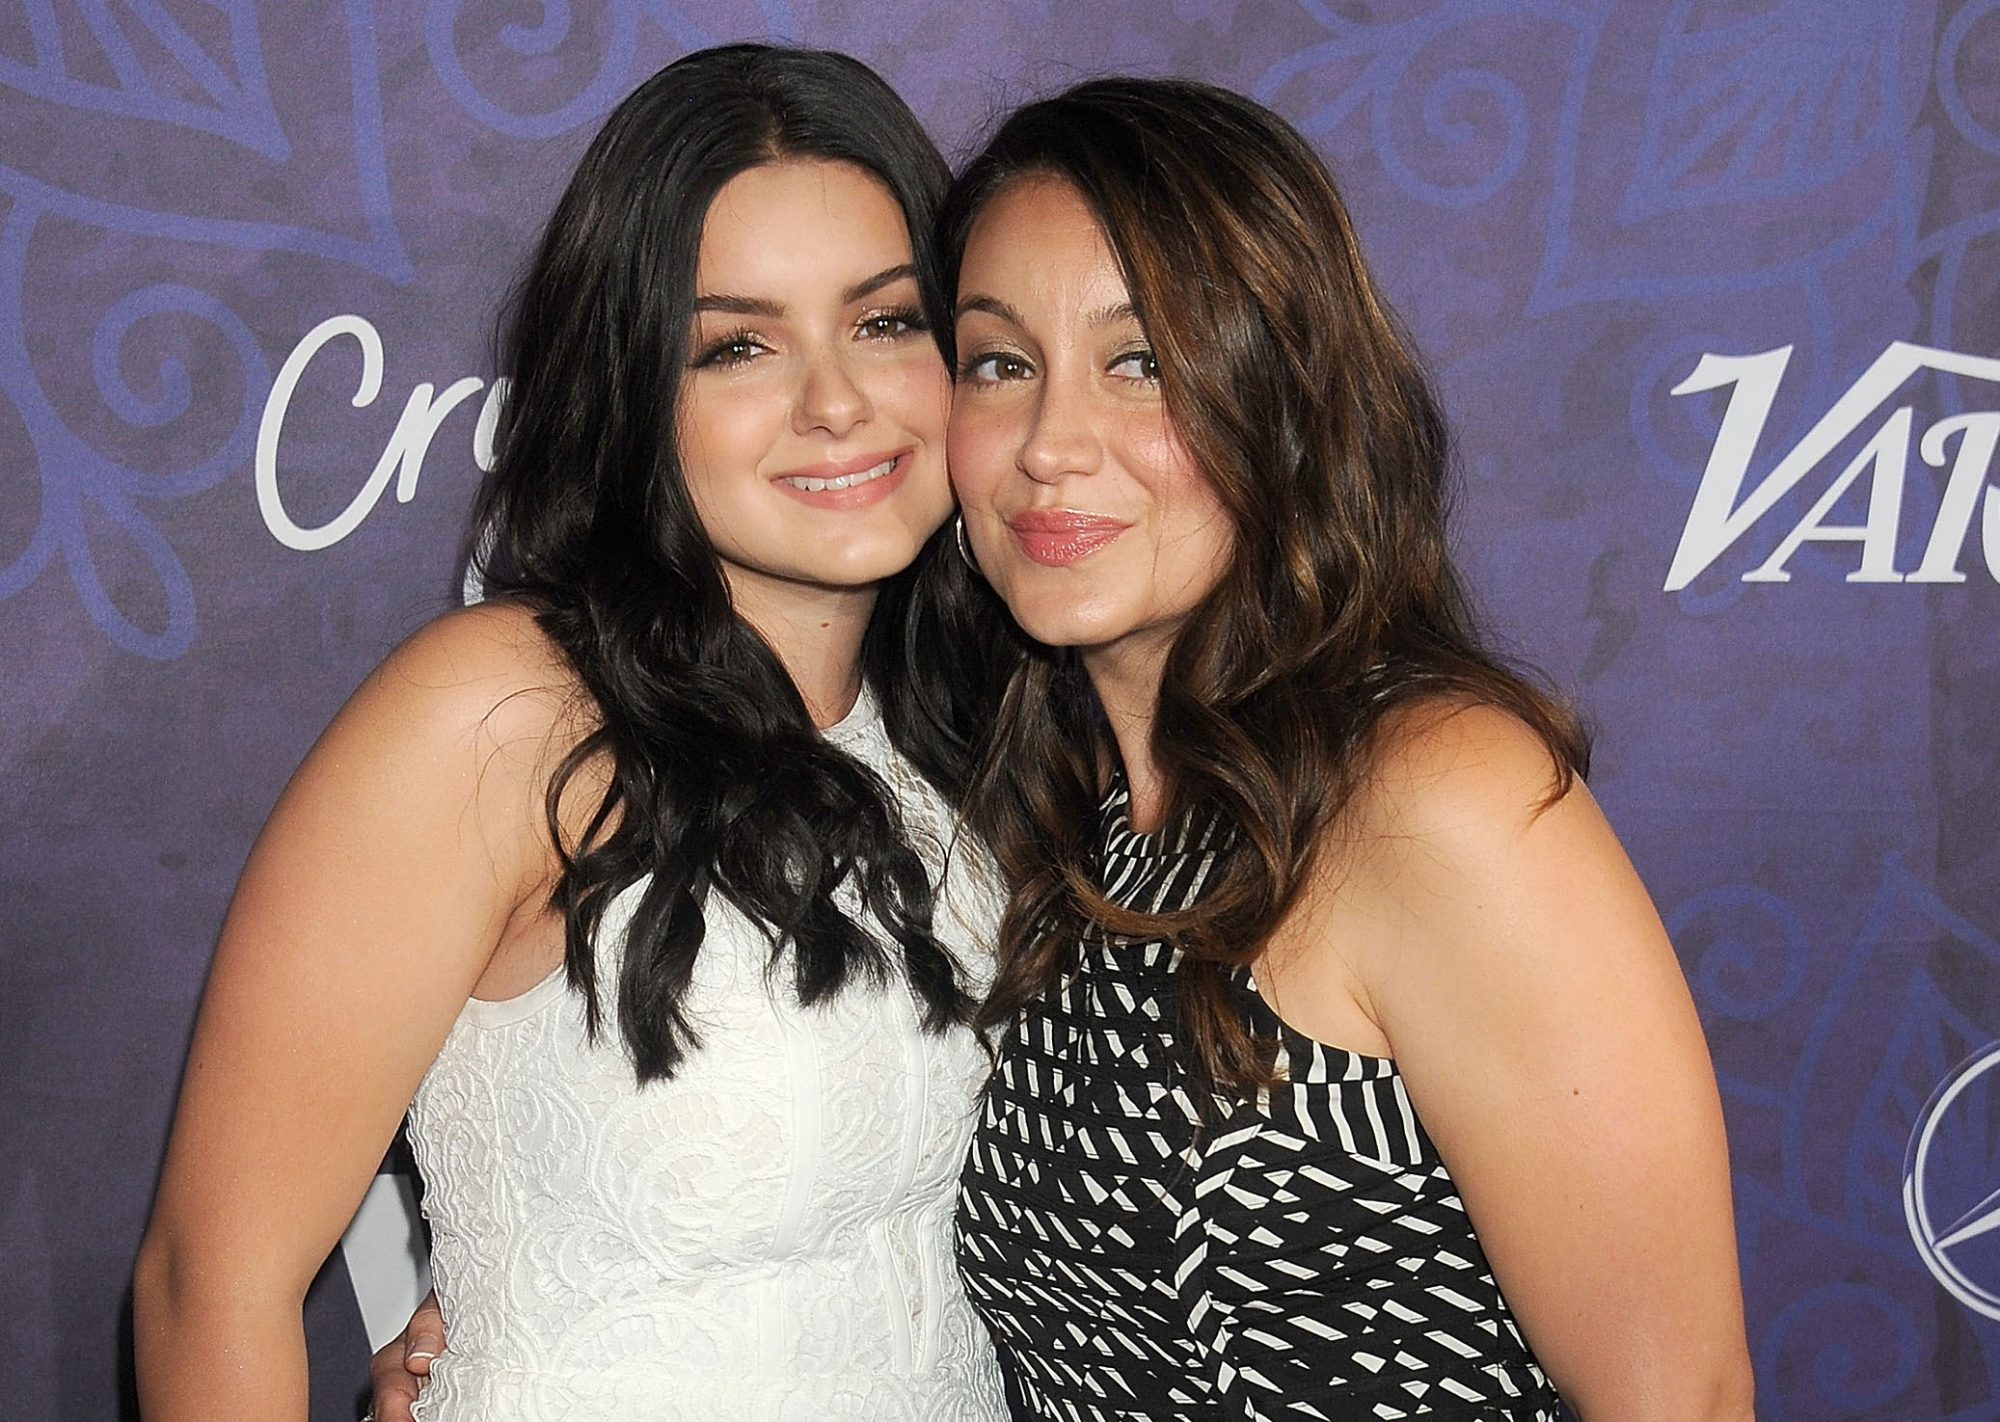 Actress Ariel Winter and sister Shanelle Workman arrive at the Variety And Women In Film Annual Pre-Emmy Celebration at Gracias Madre on August 23, 2014 in West Hollywood, California.